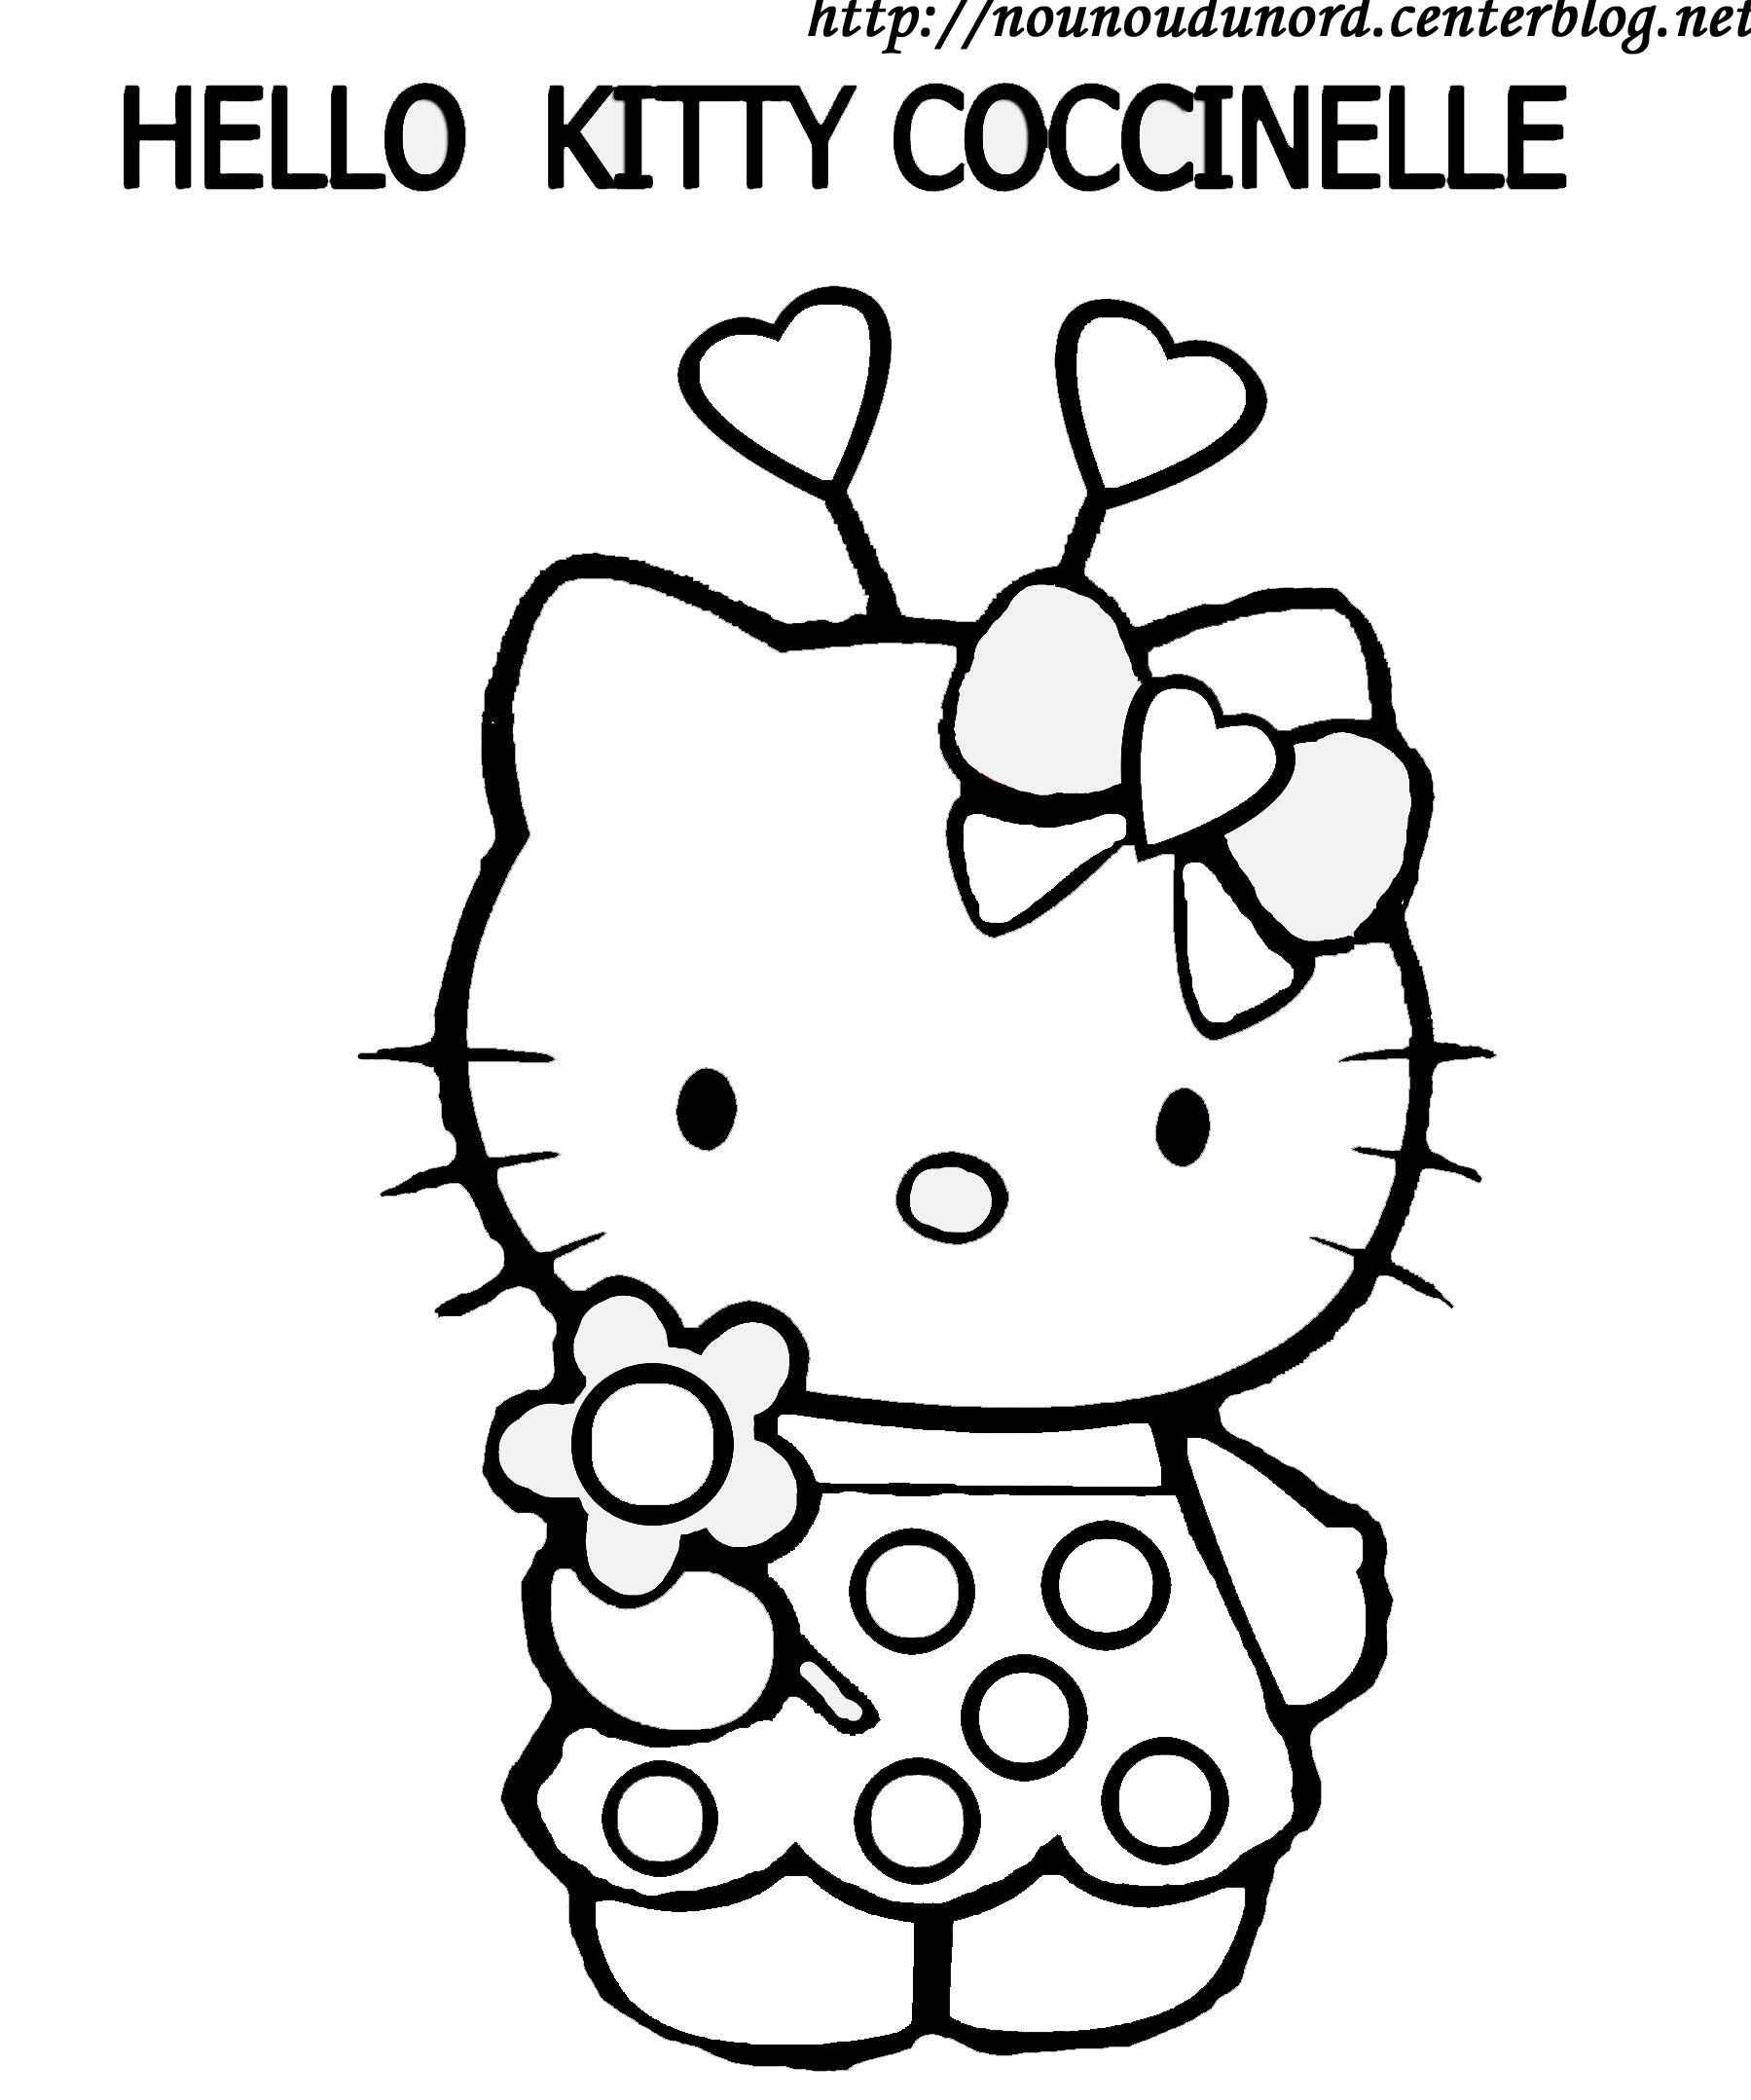 Beau Dessins A Colorier En Ligne Hello Kitty